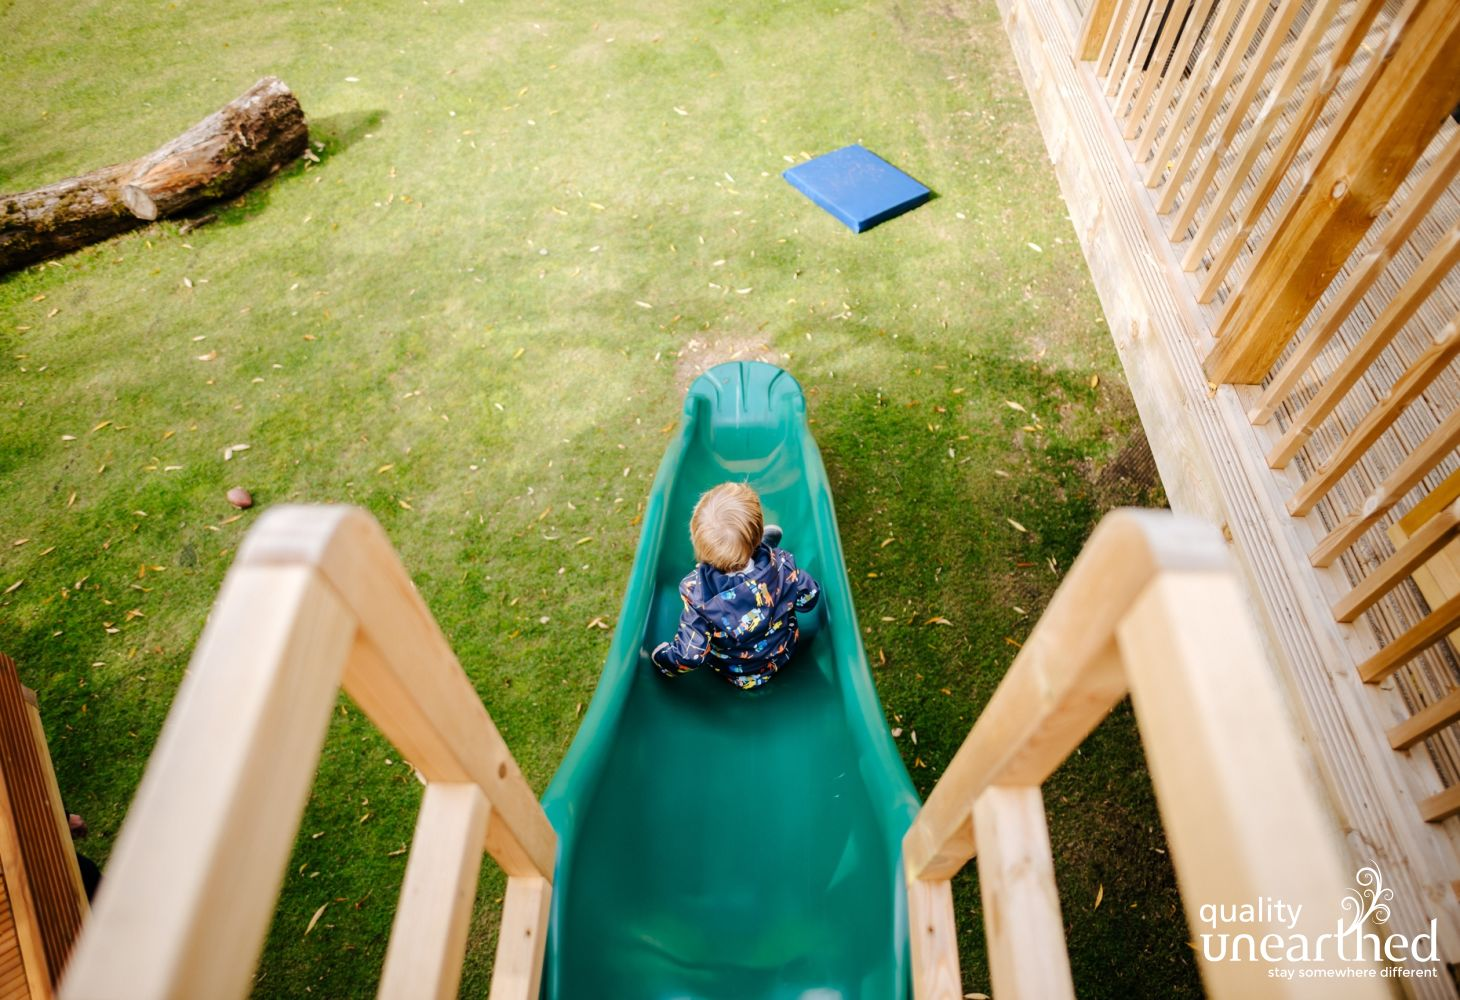 The slide from the terrace to the garden at the family treehouse